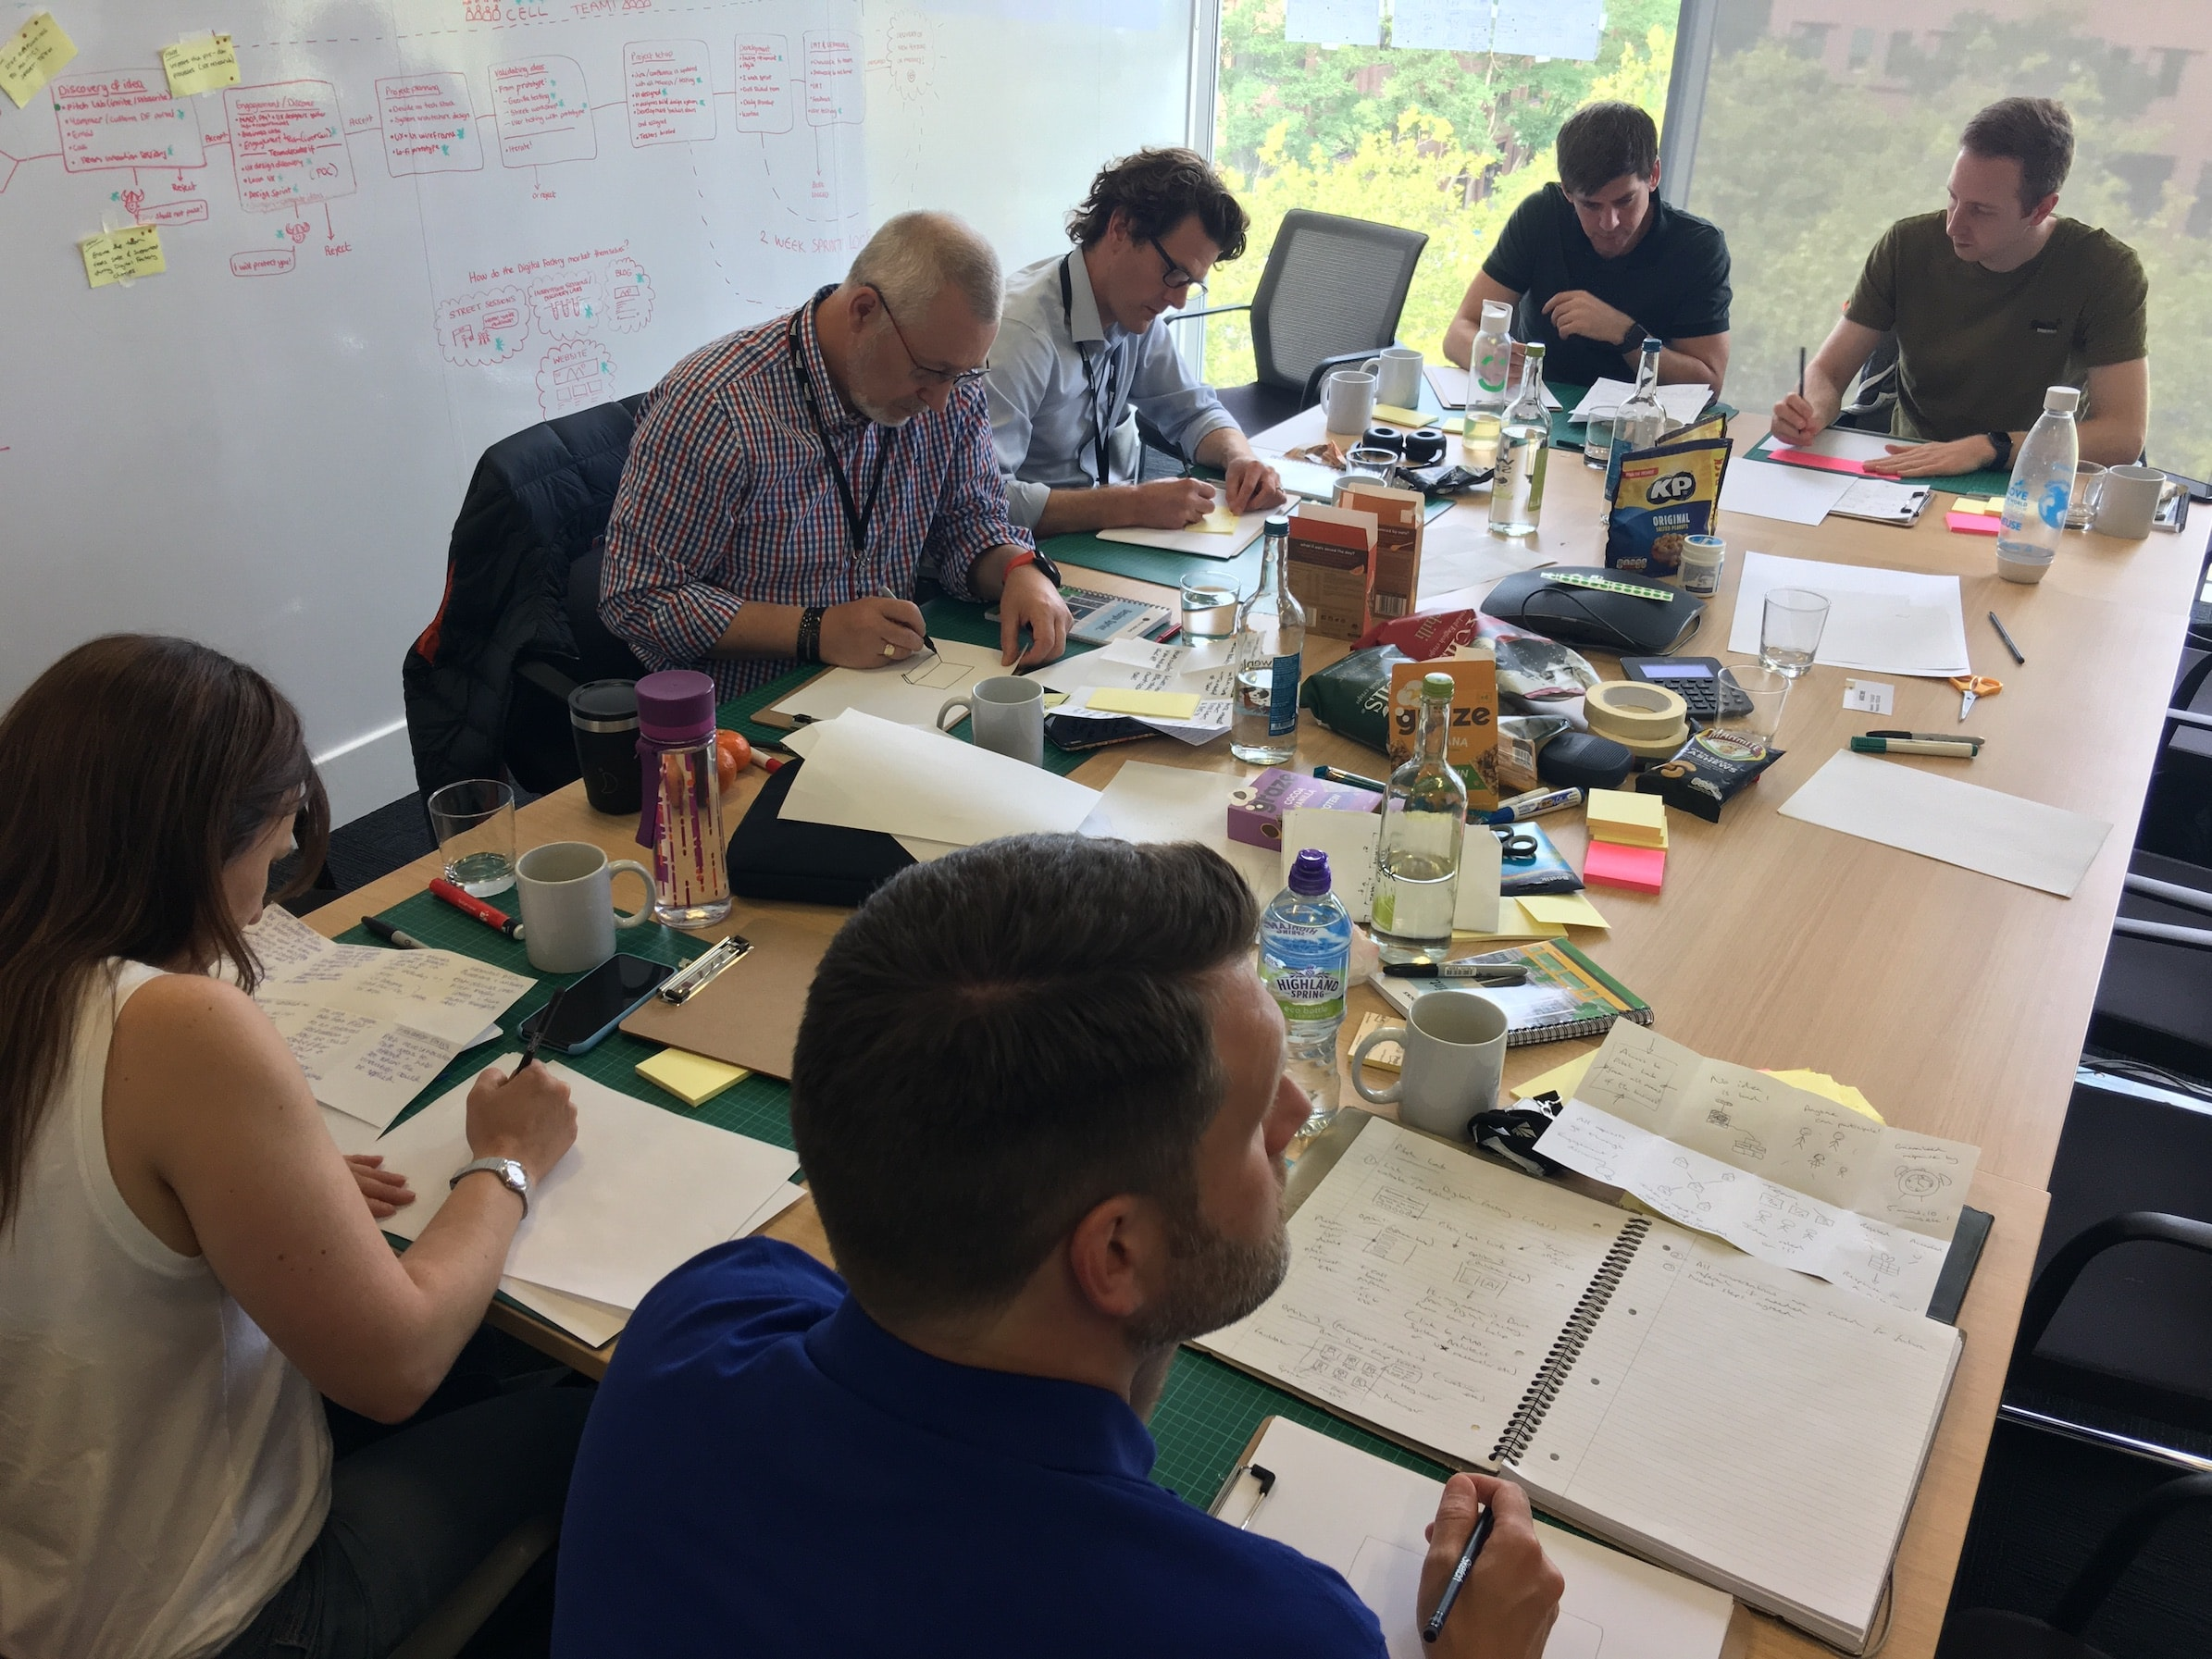 A photograph of the design sprint team working together to come up with ideas, while seated around a conference table.